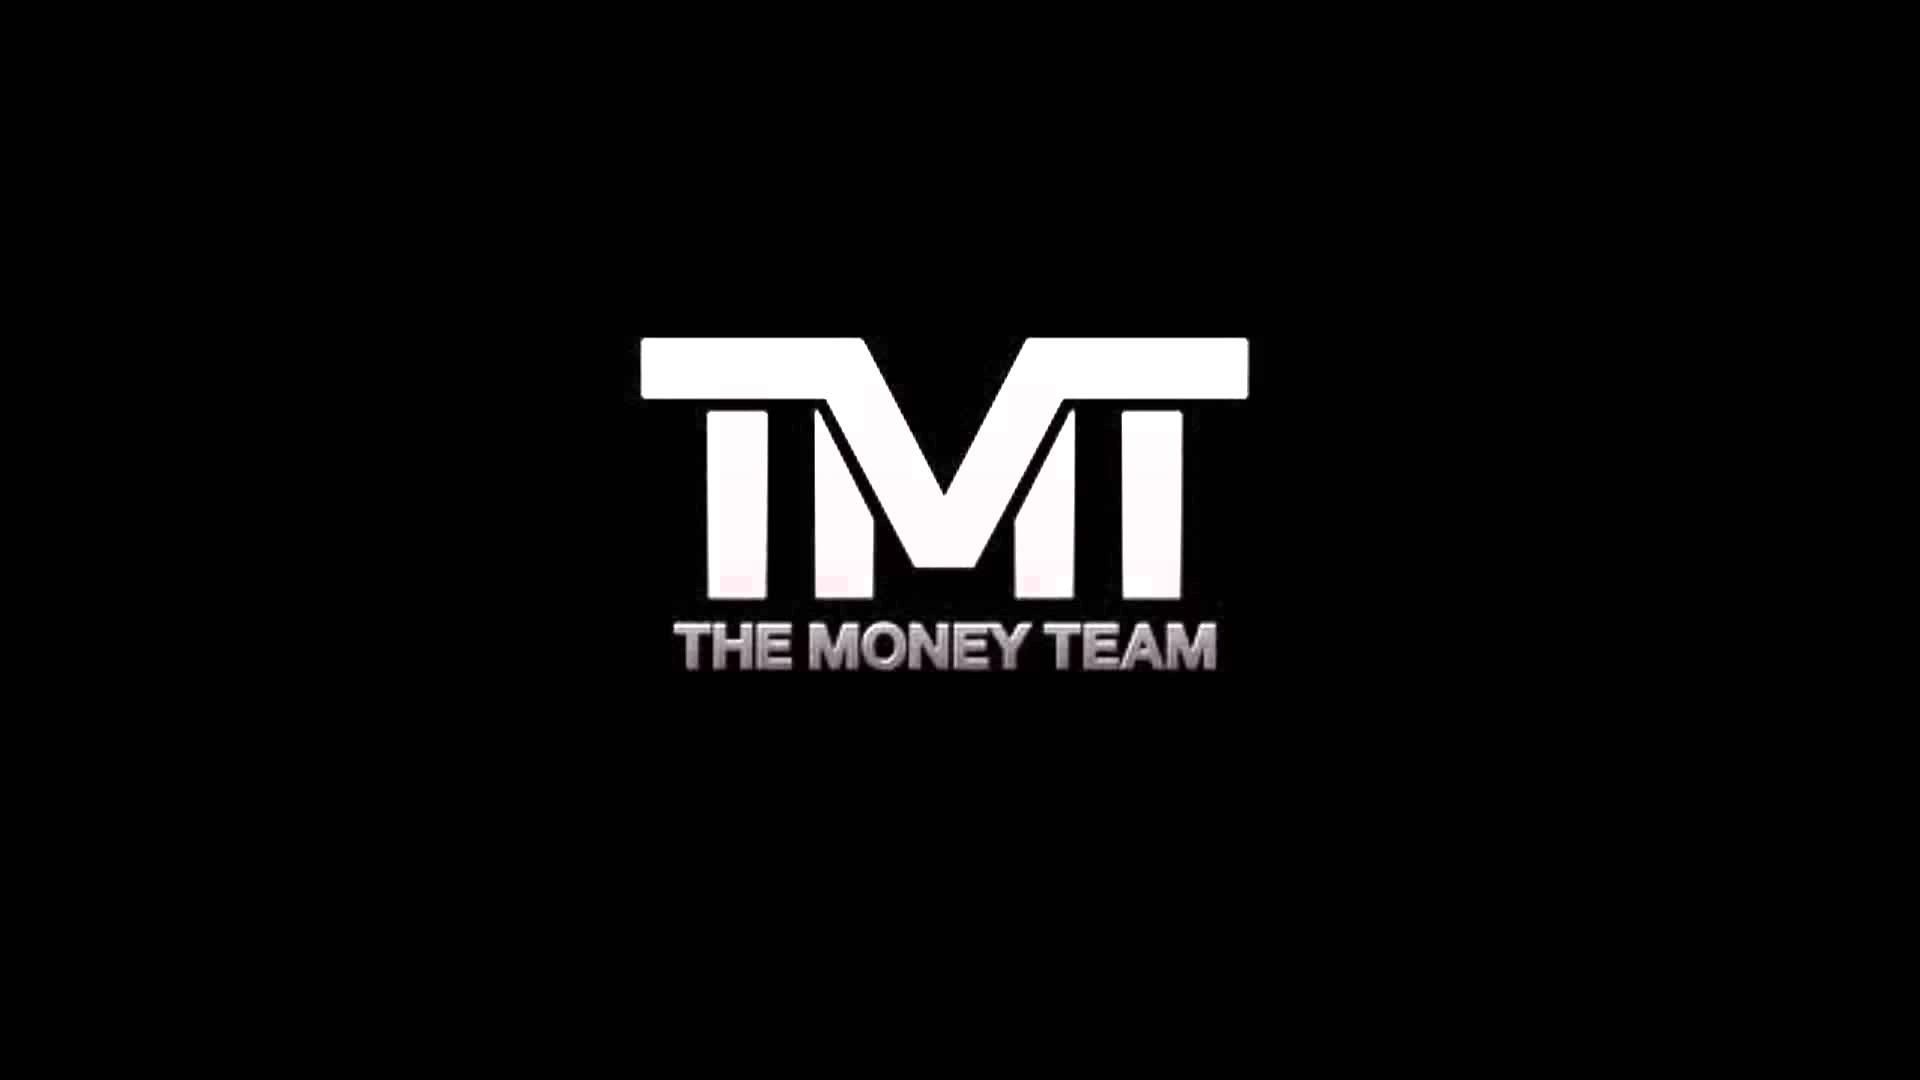 Money Team Wallpaper